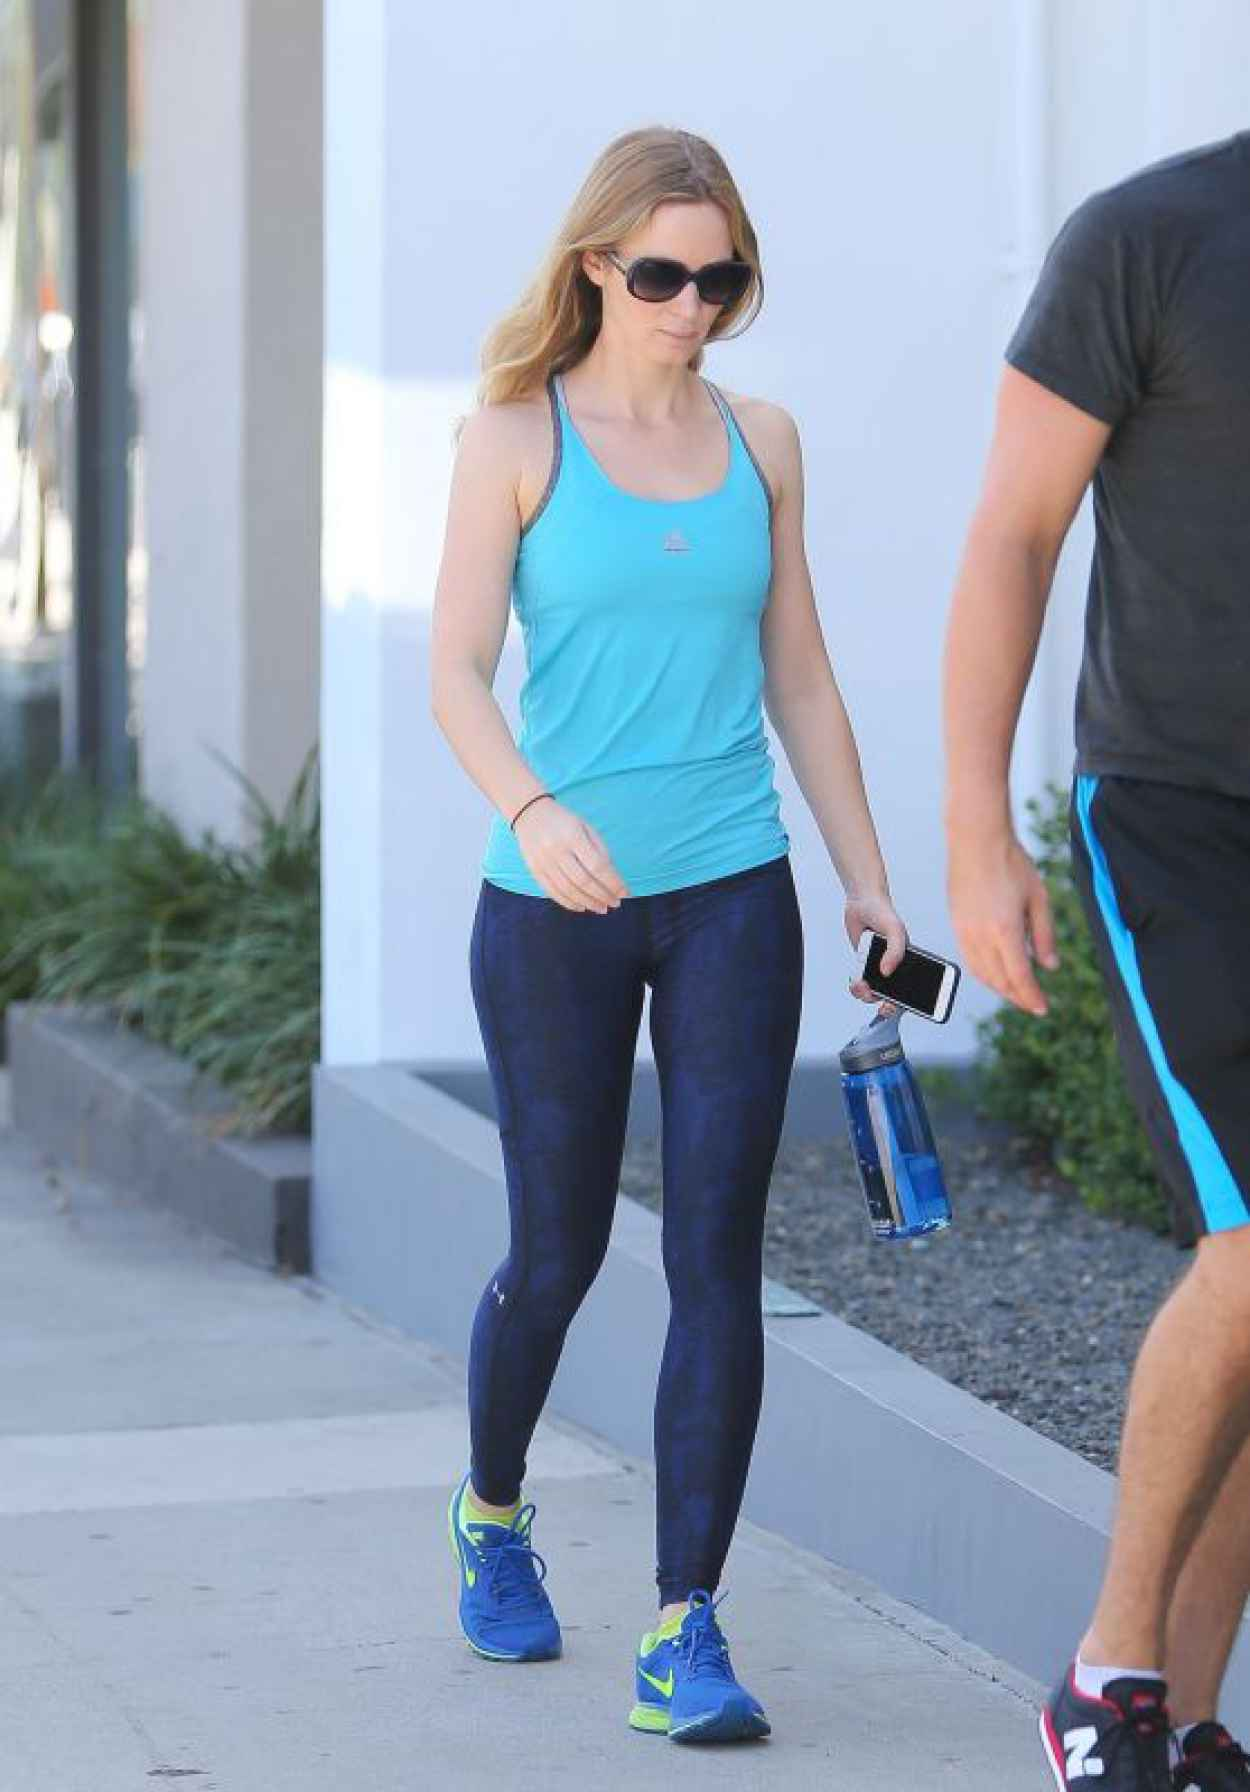 Emily Blunt Booty in Tights at a Gym in West Hollywood - August 2015-1